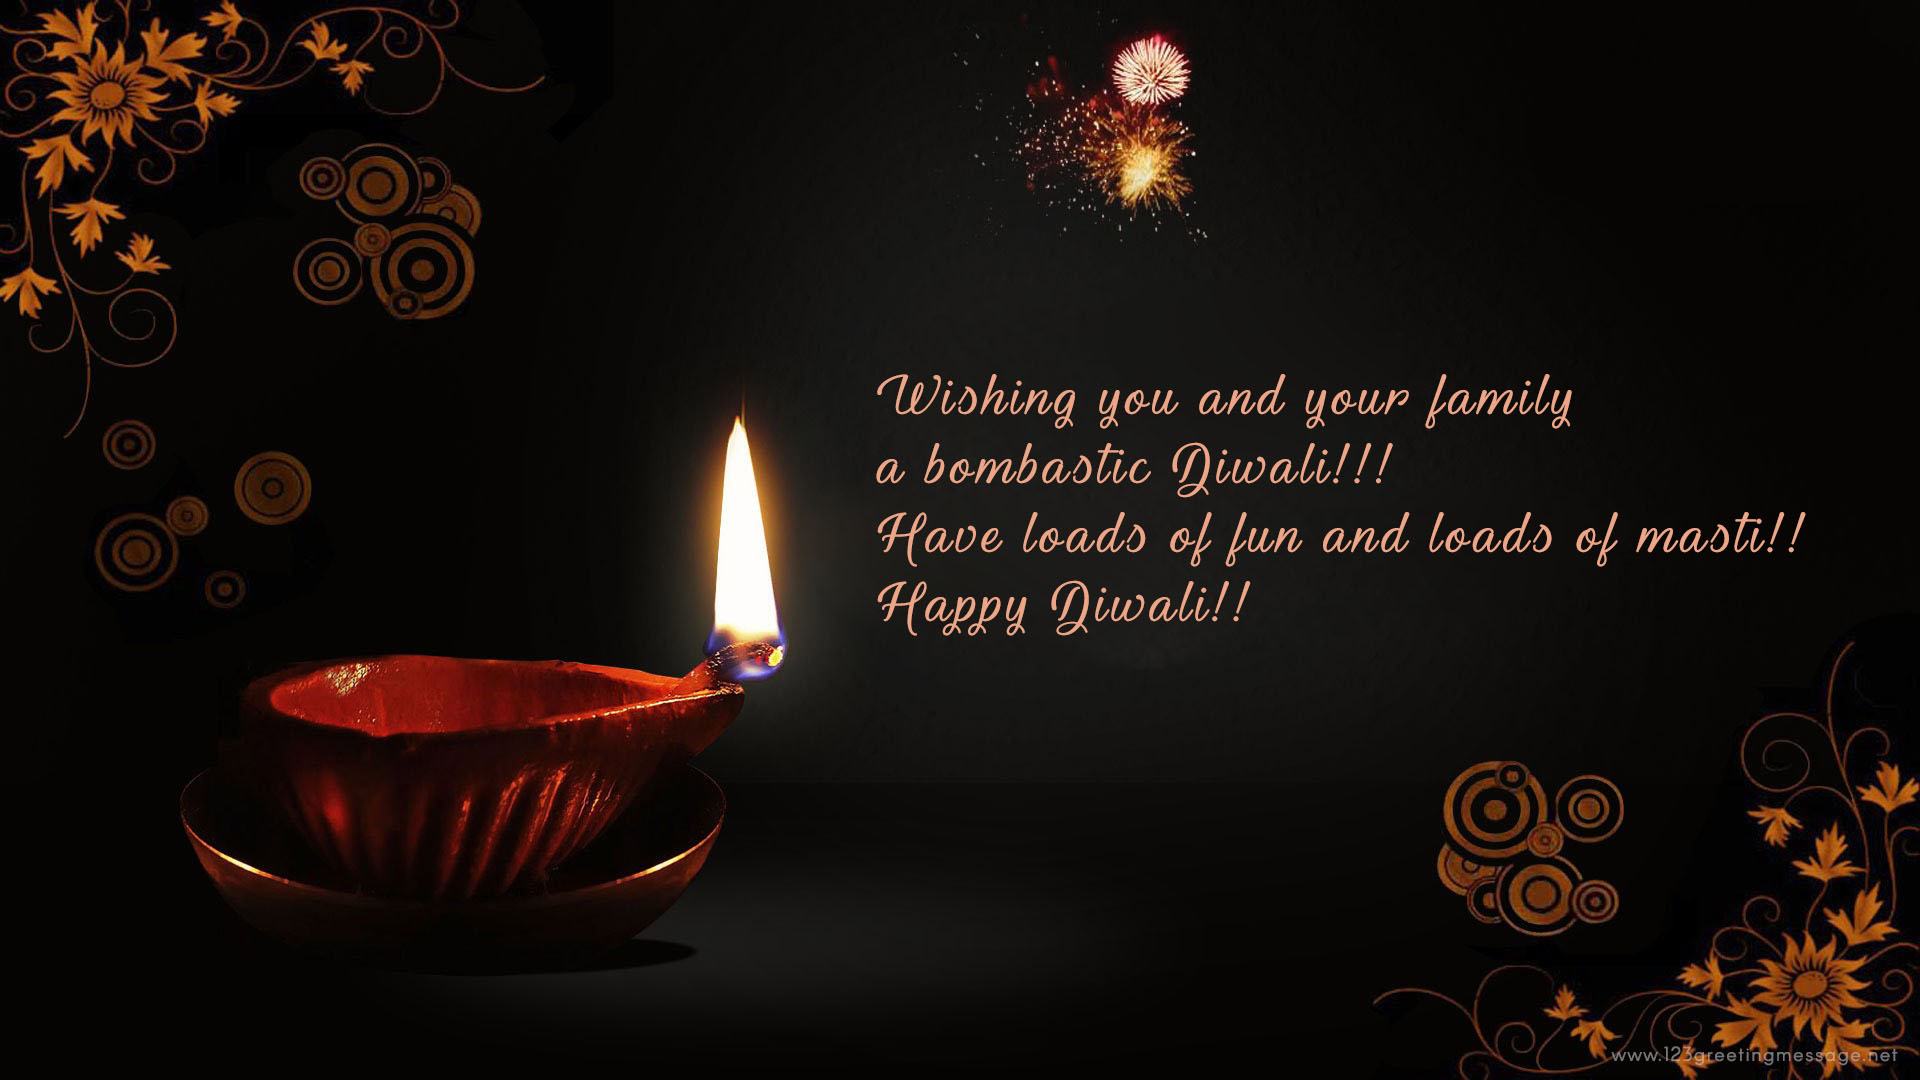 Why is Diwali Celebrated